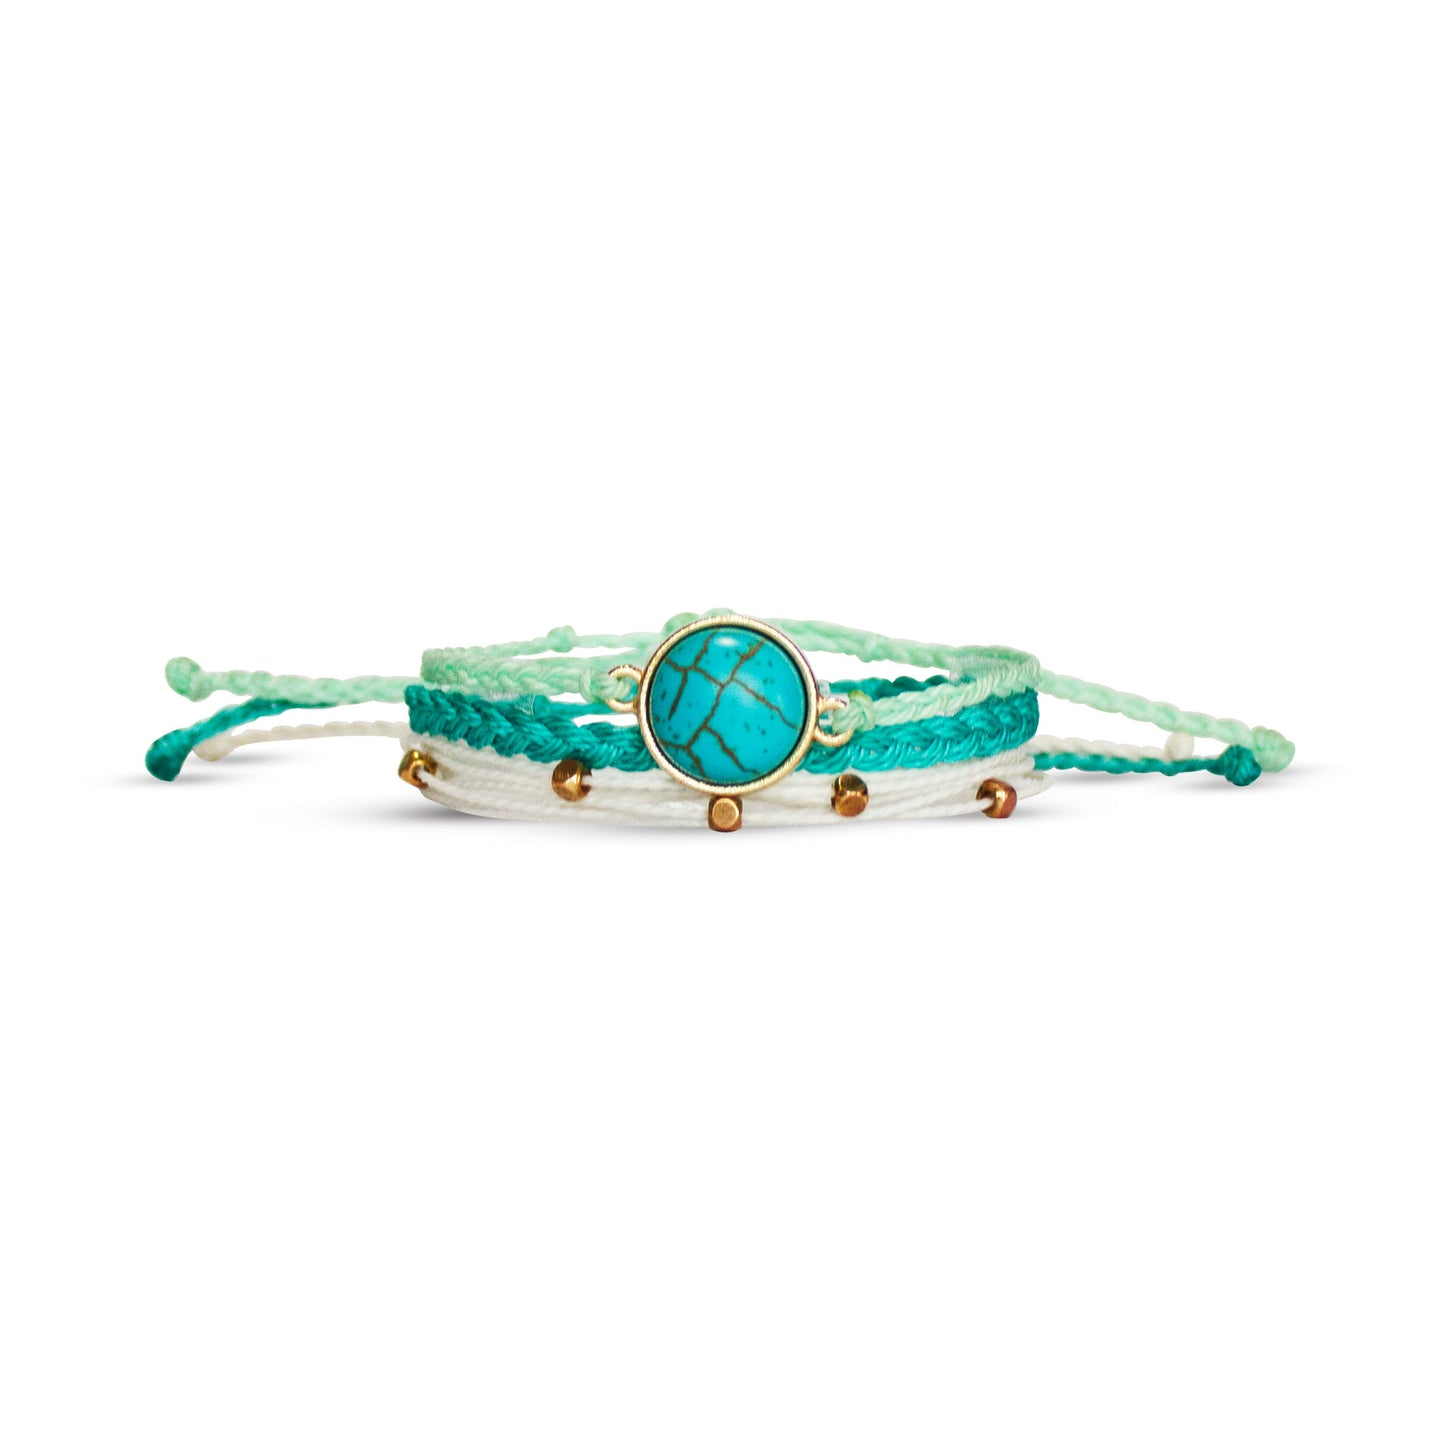 emerald eyes bracelet from Nakana Bracelet's OG collection on a white background